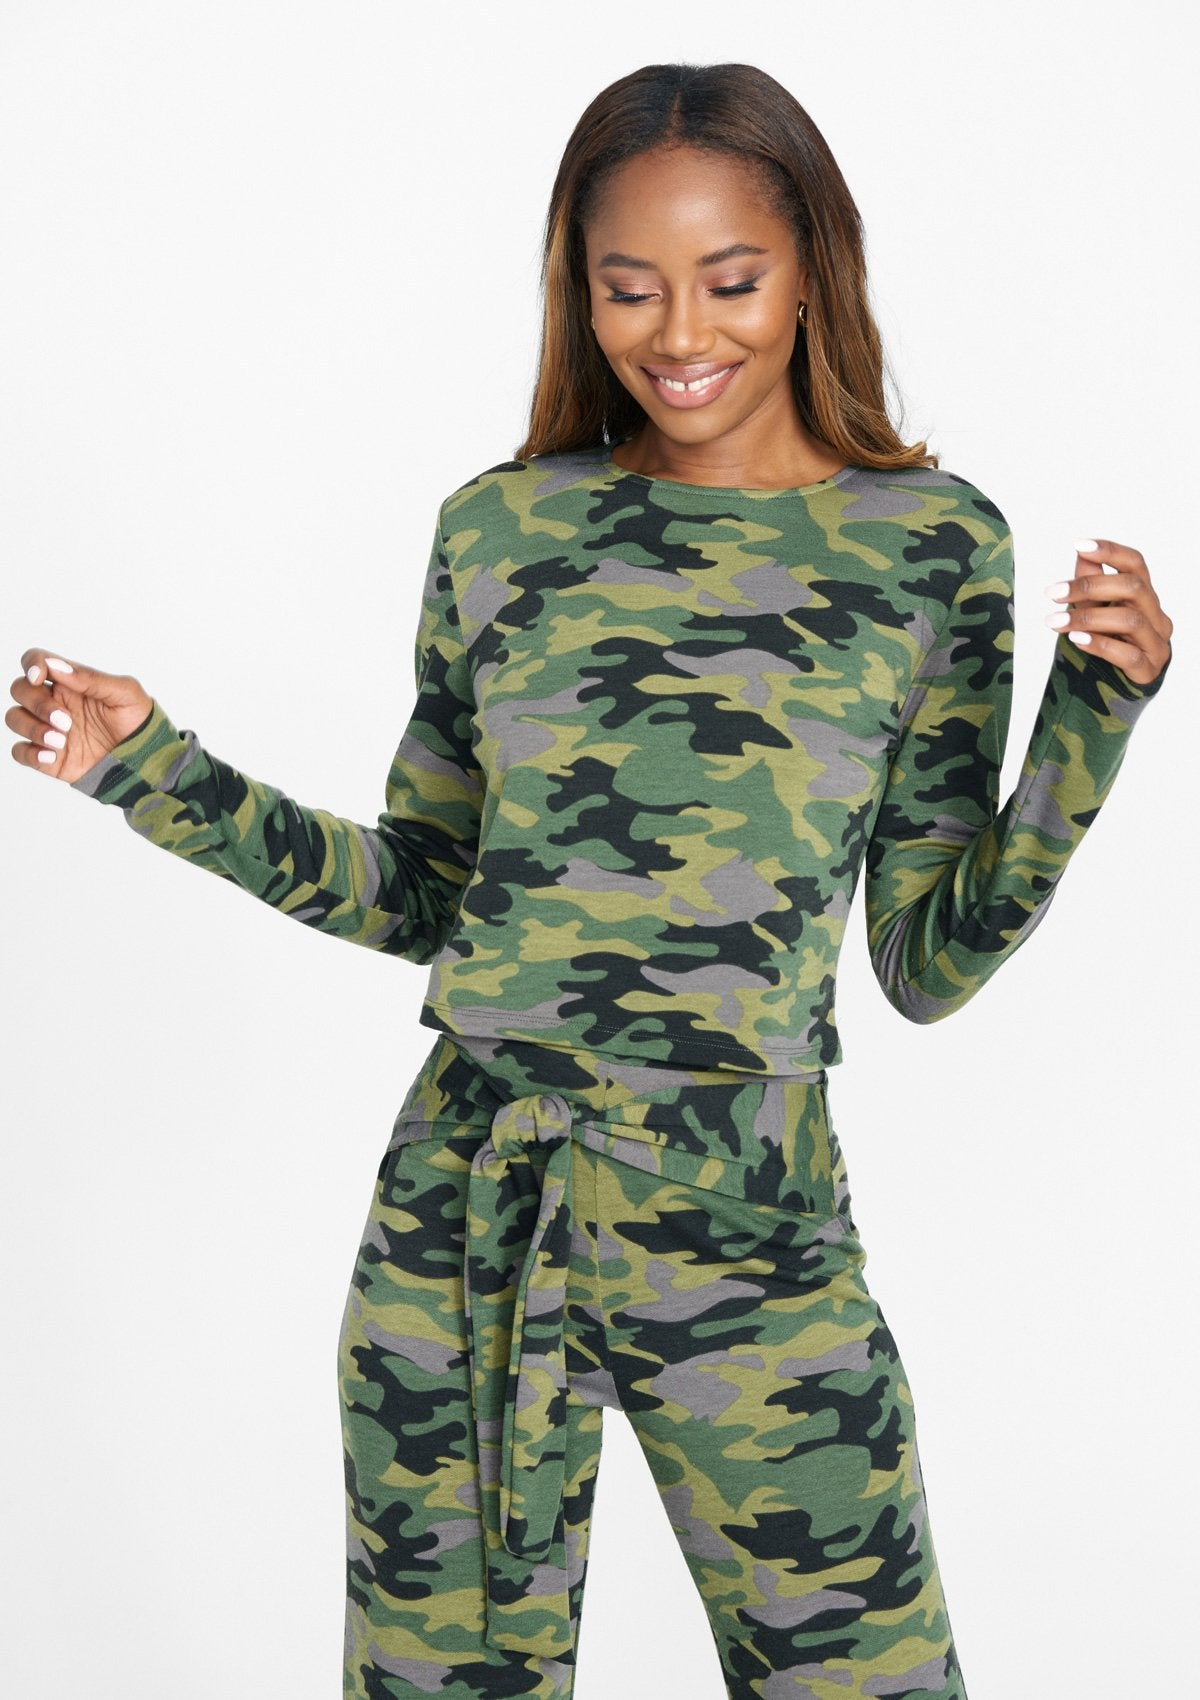 Alloy Apparel Tall Long Sleeve Boxy Tee for Women in Green Camo Size S/M   Polyester